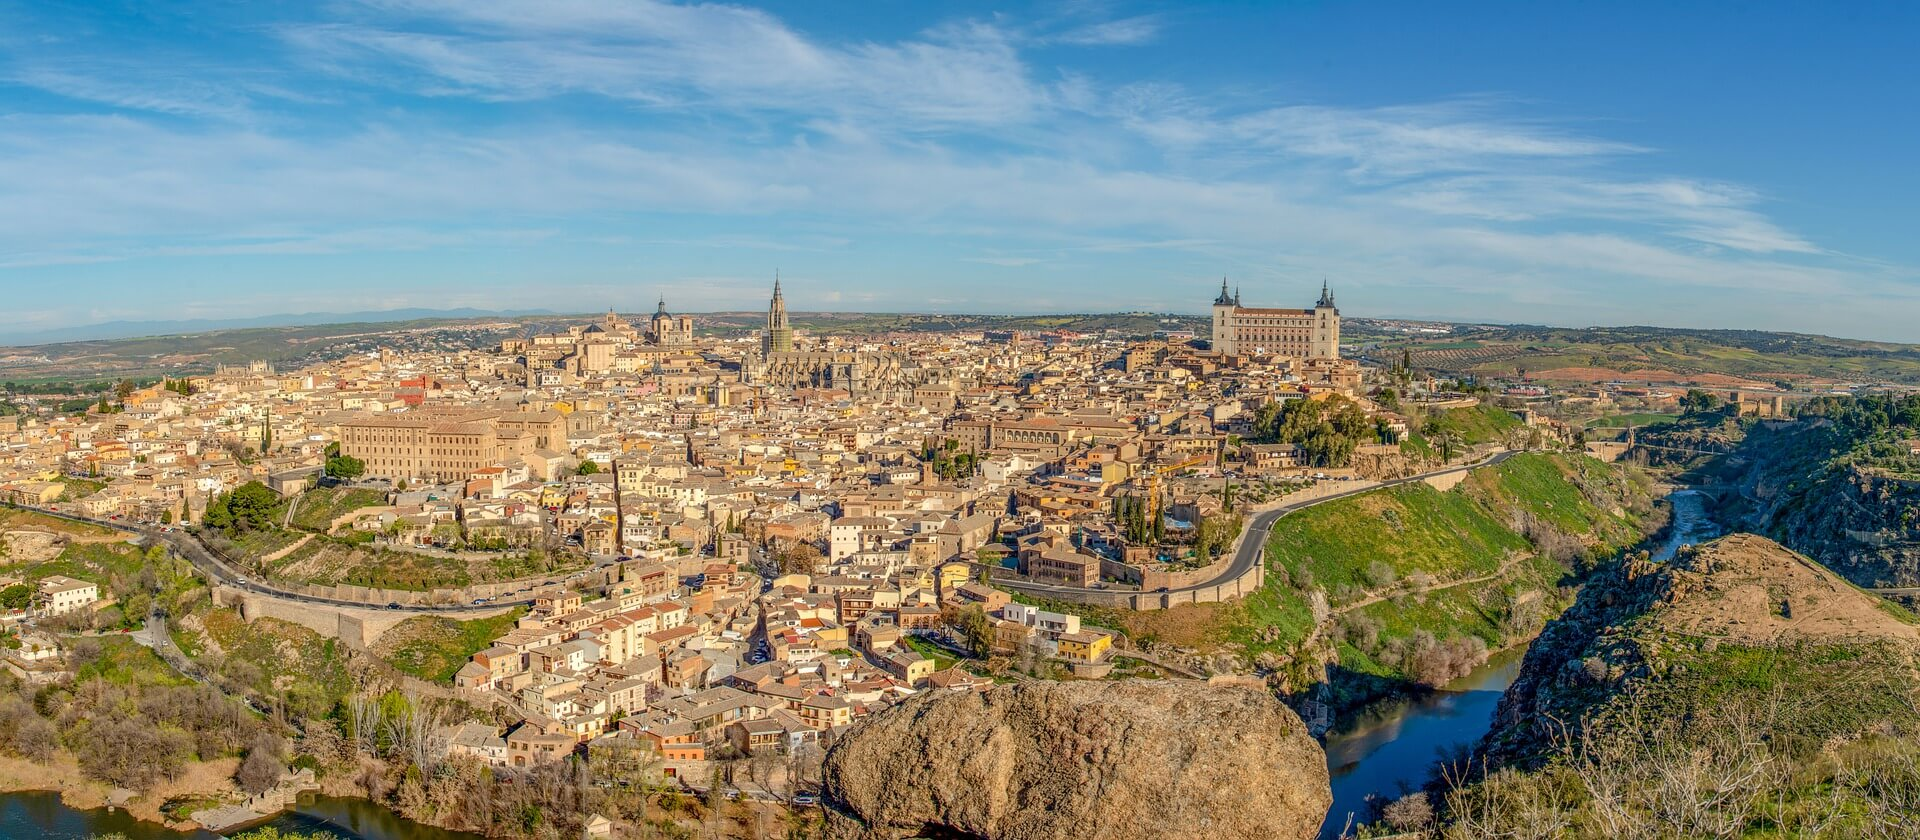 A panaramic shot looking from the Toledo viewpoint across the city in daylight